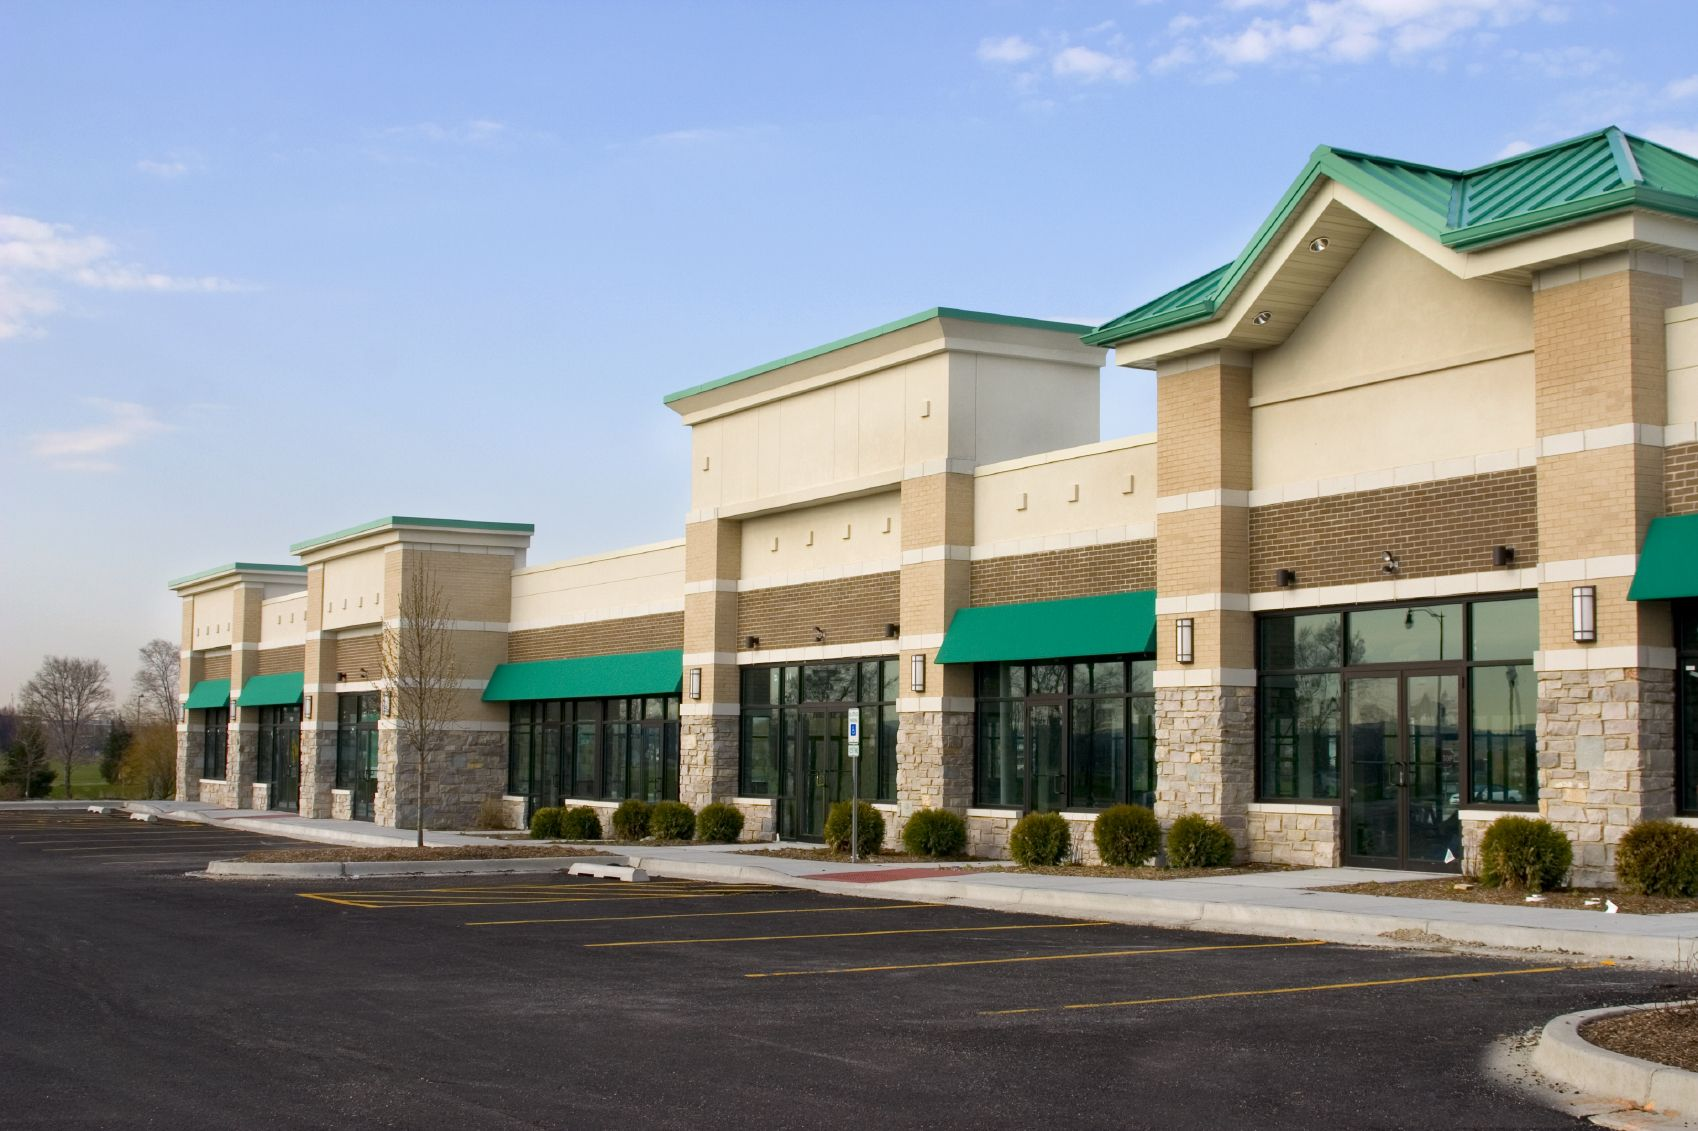 images of retail stores exteriors iStock